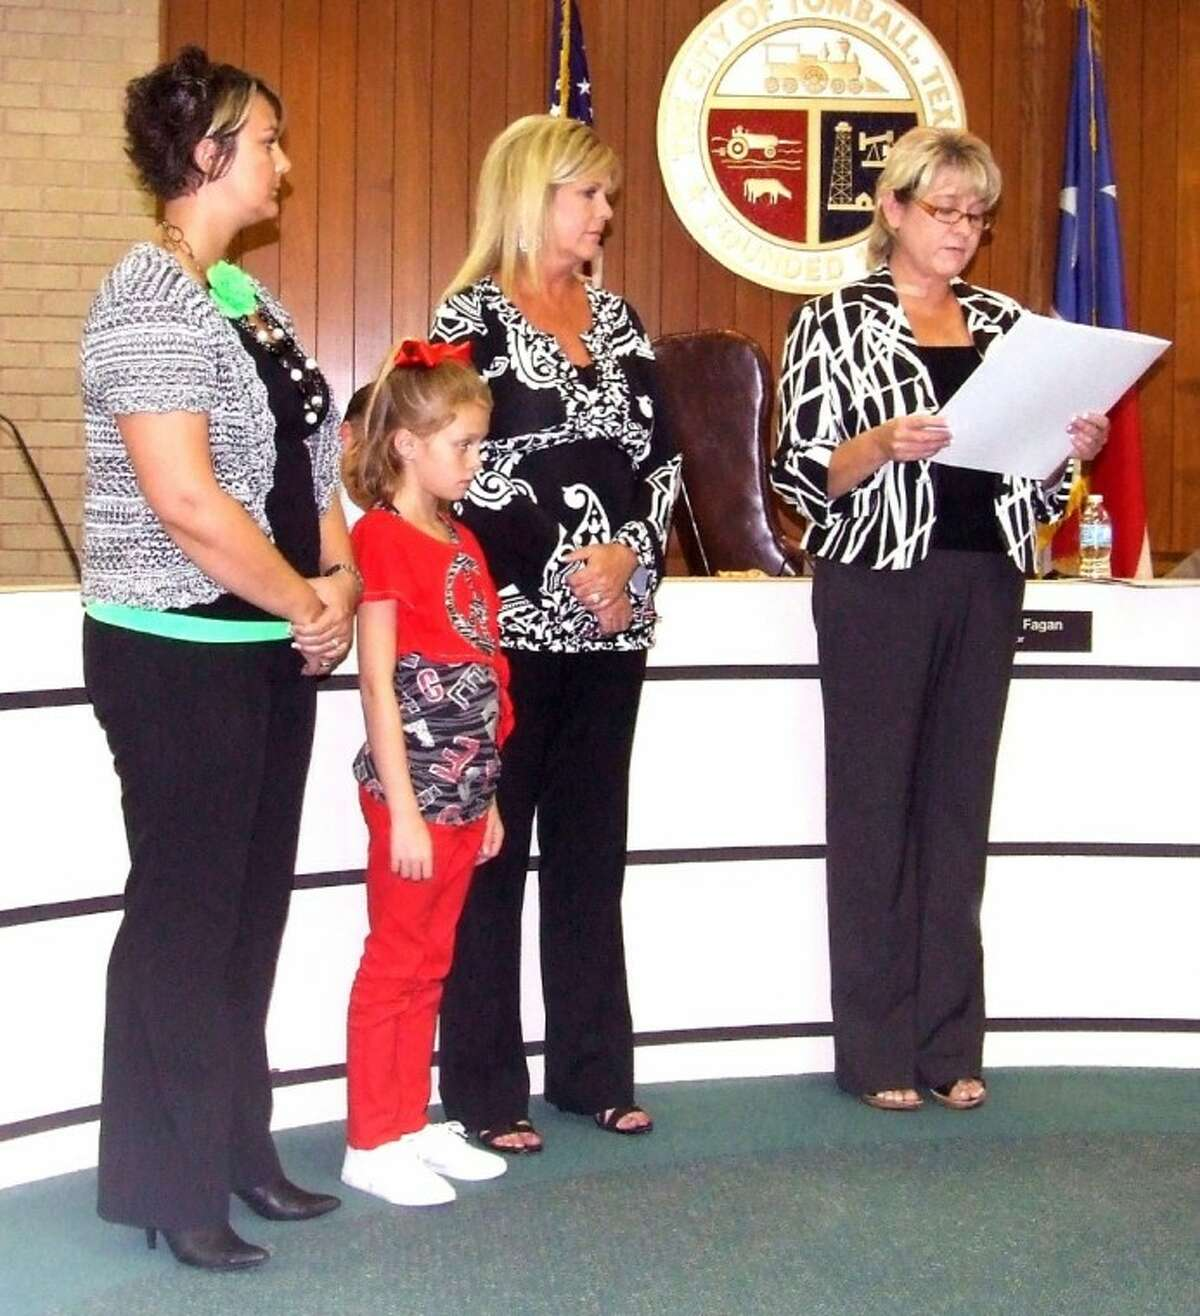 Tomball Mayor Gretchen Fagan reads a proclamation naming Sept. 19 Texting and Driving - It Can Wait Day during the city's Sept. 4 meeting. Looking on are the family of Chance Wilcox, from left, Amber Wilcox, Harlie Wilcox-Cillever and Shelli Ralls-Brinkley. Wilcox was killed in an accident in March 2008 caused by a distracted driver.